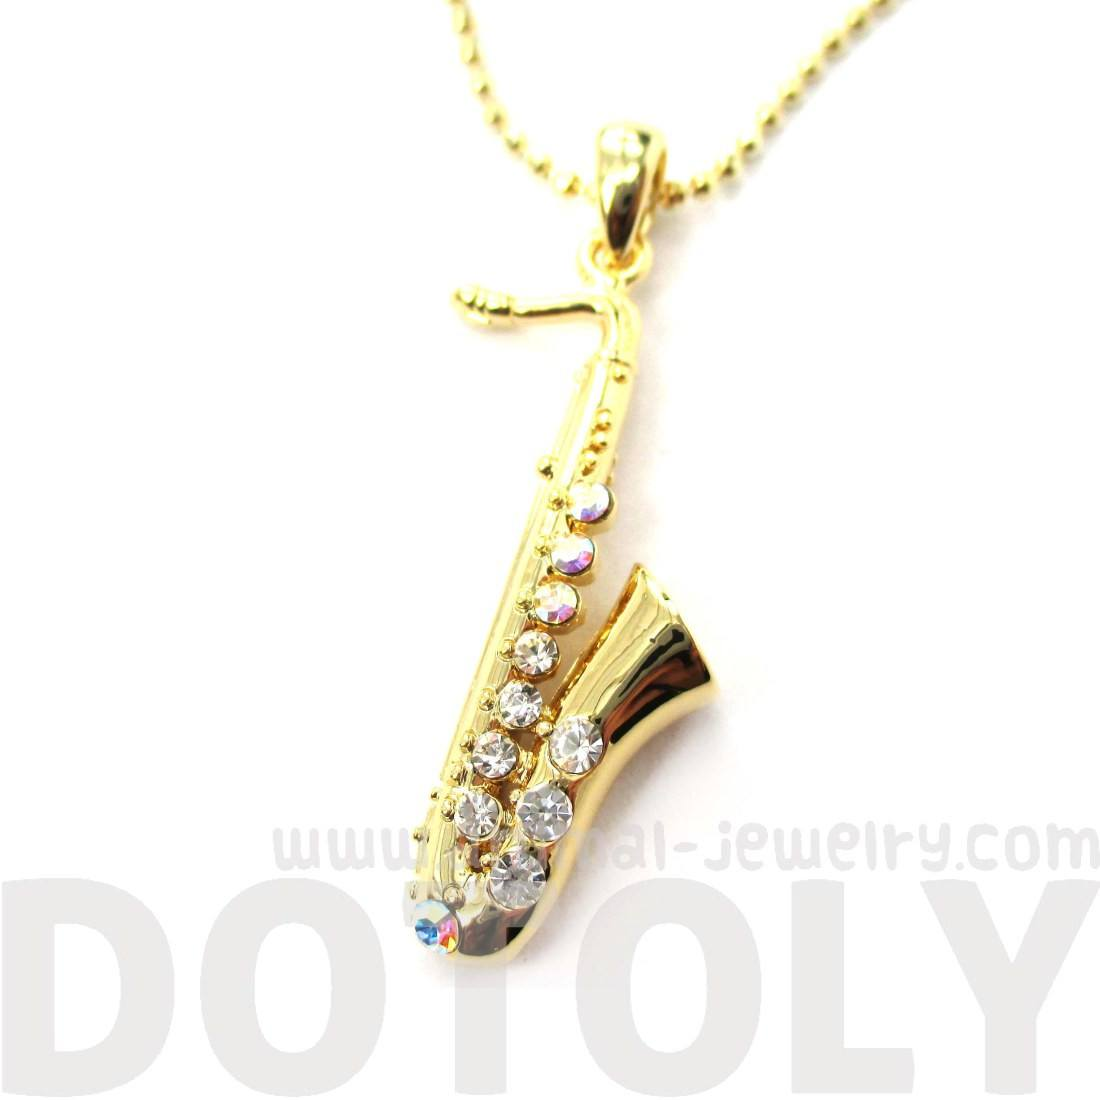 Saxophone Musical Instrument Shaped Necklace in Gold